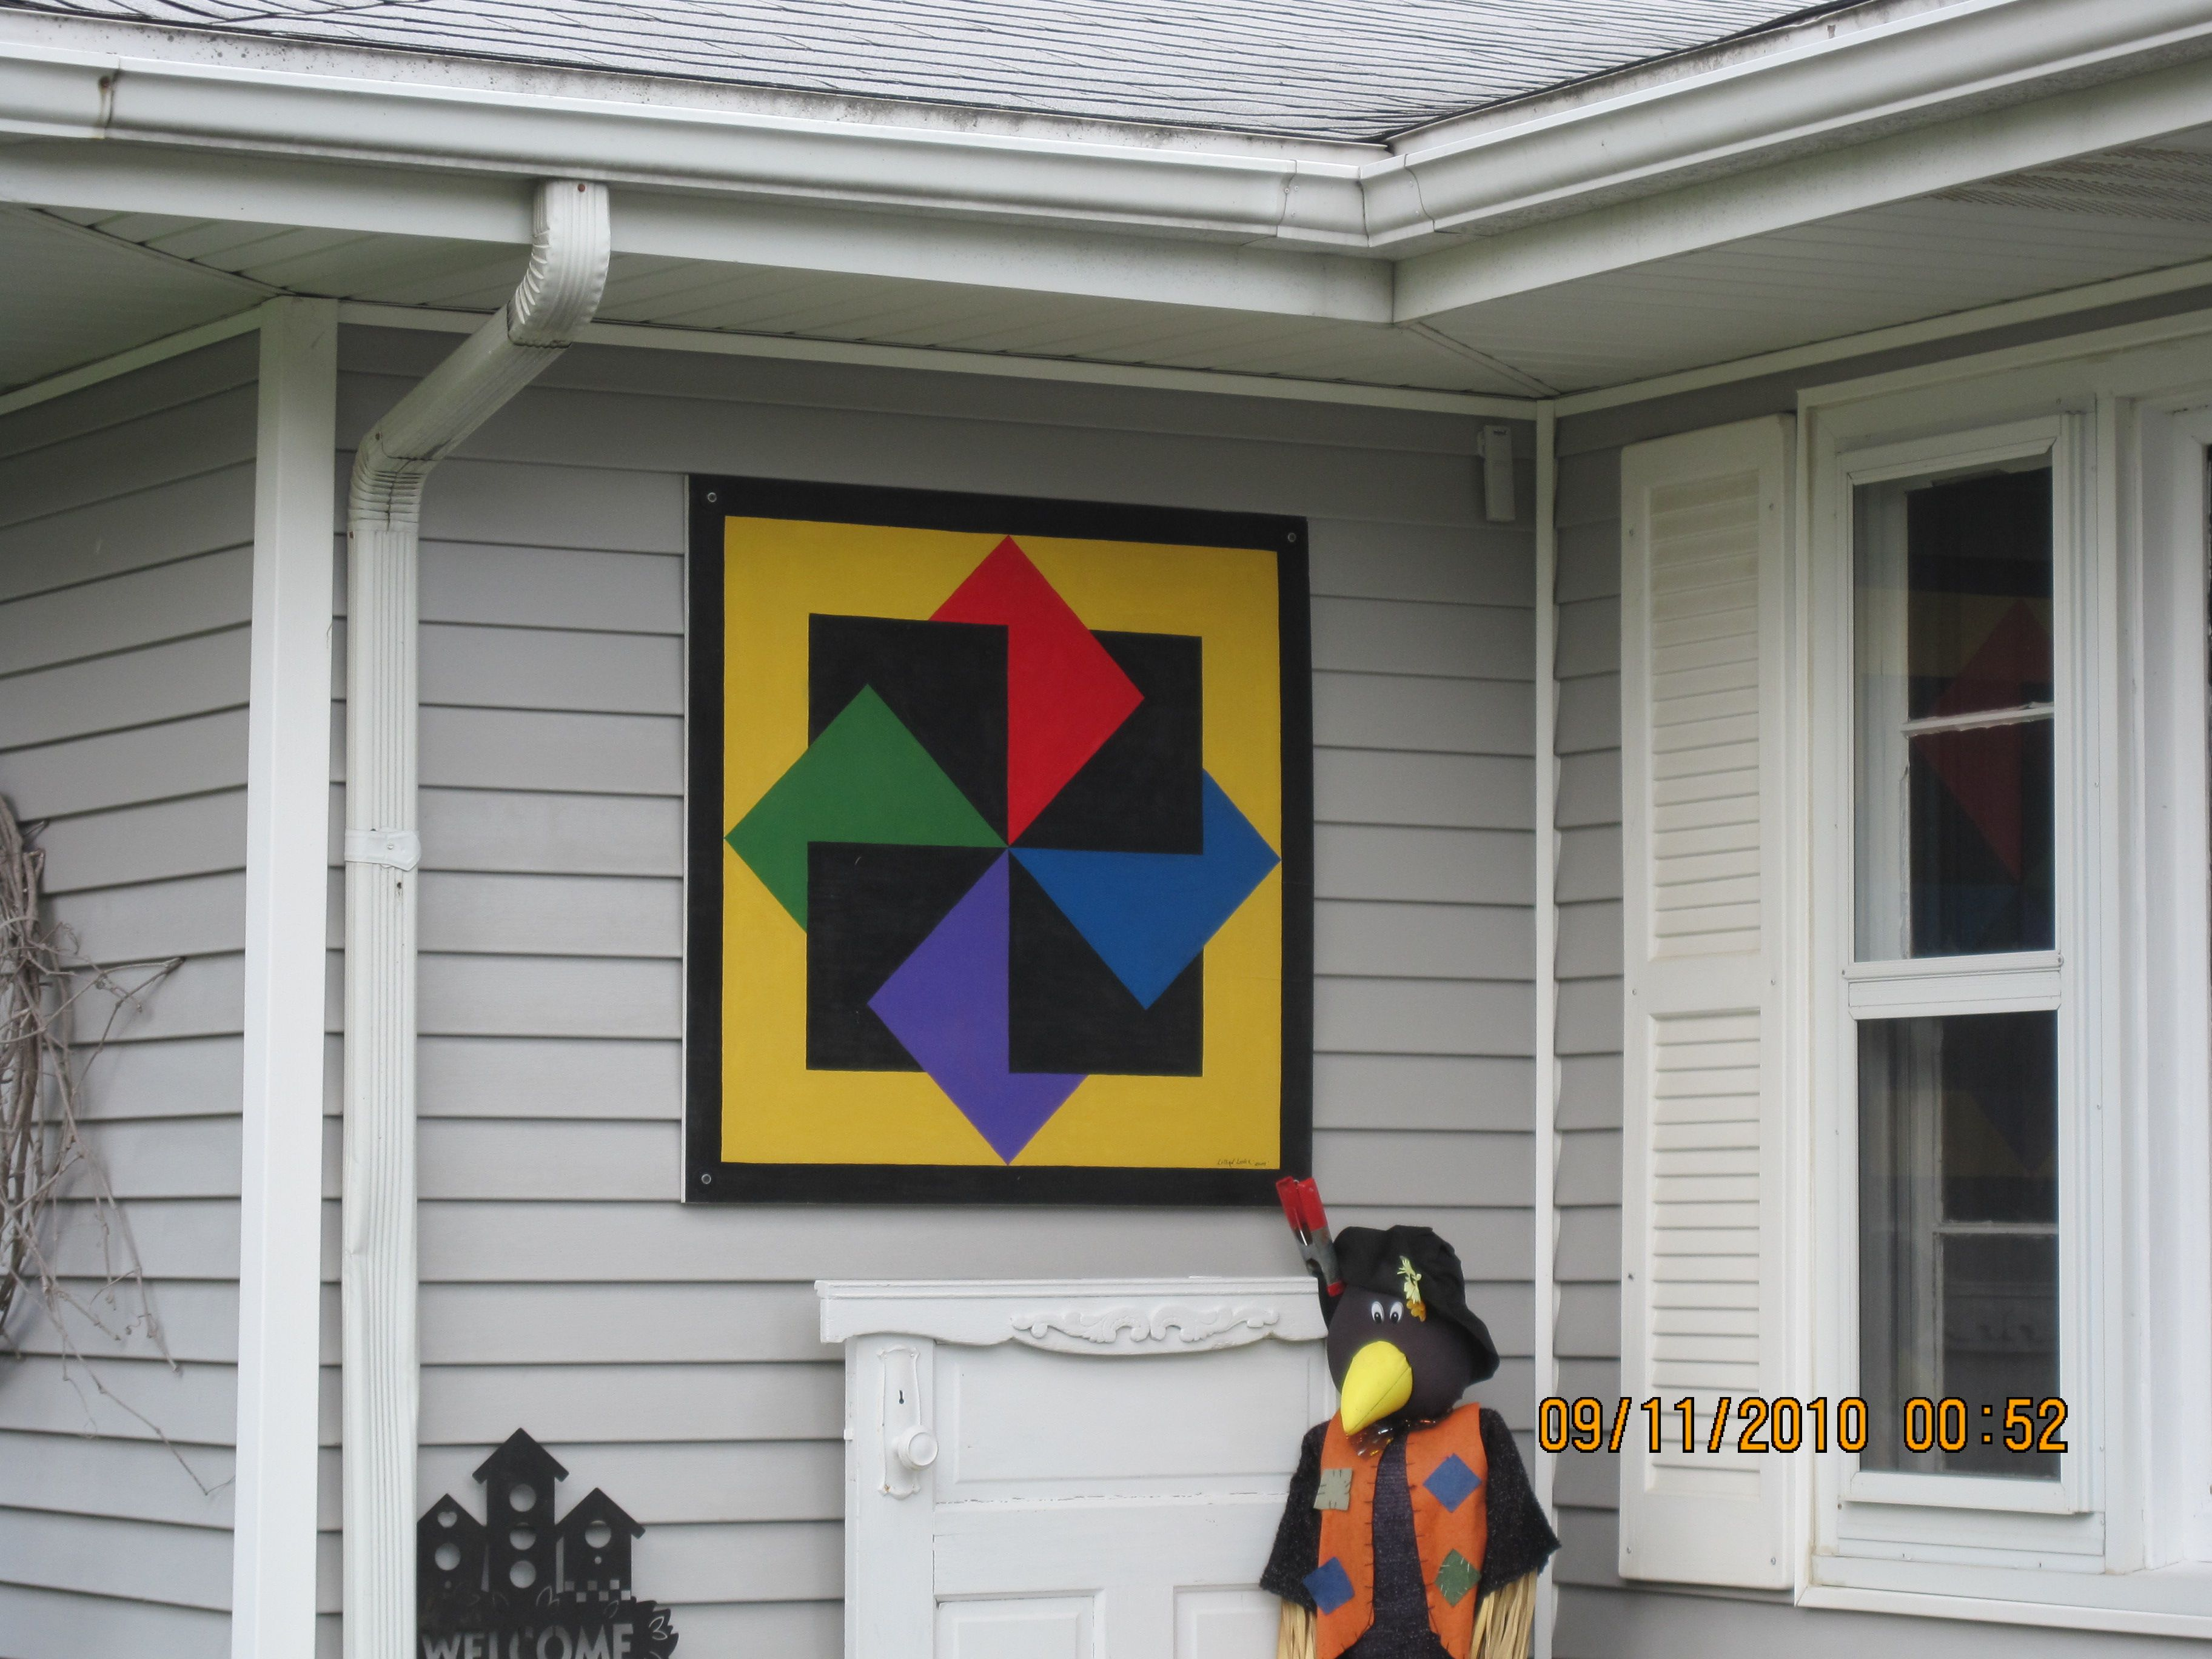 Barn Quilt Squares, Stain Glass and Barn Stars   Barn quilts : quilt patterns on barns - Adamdwight.com